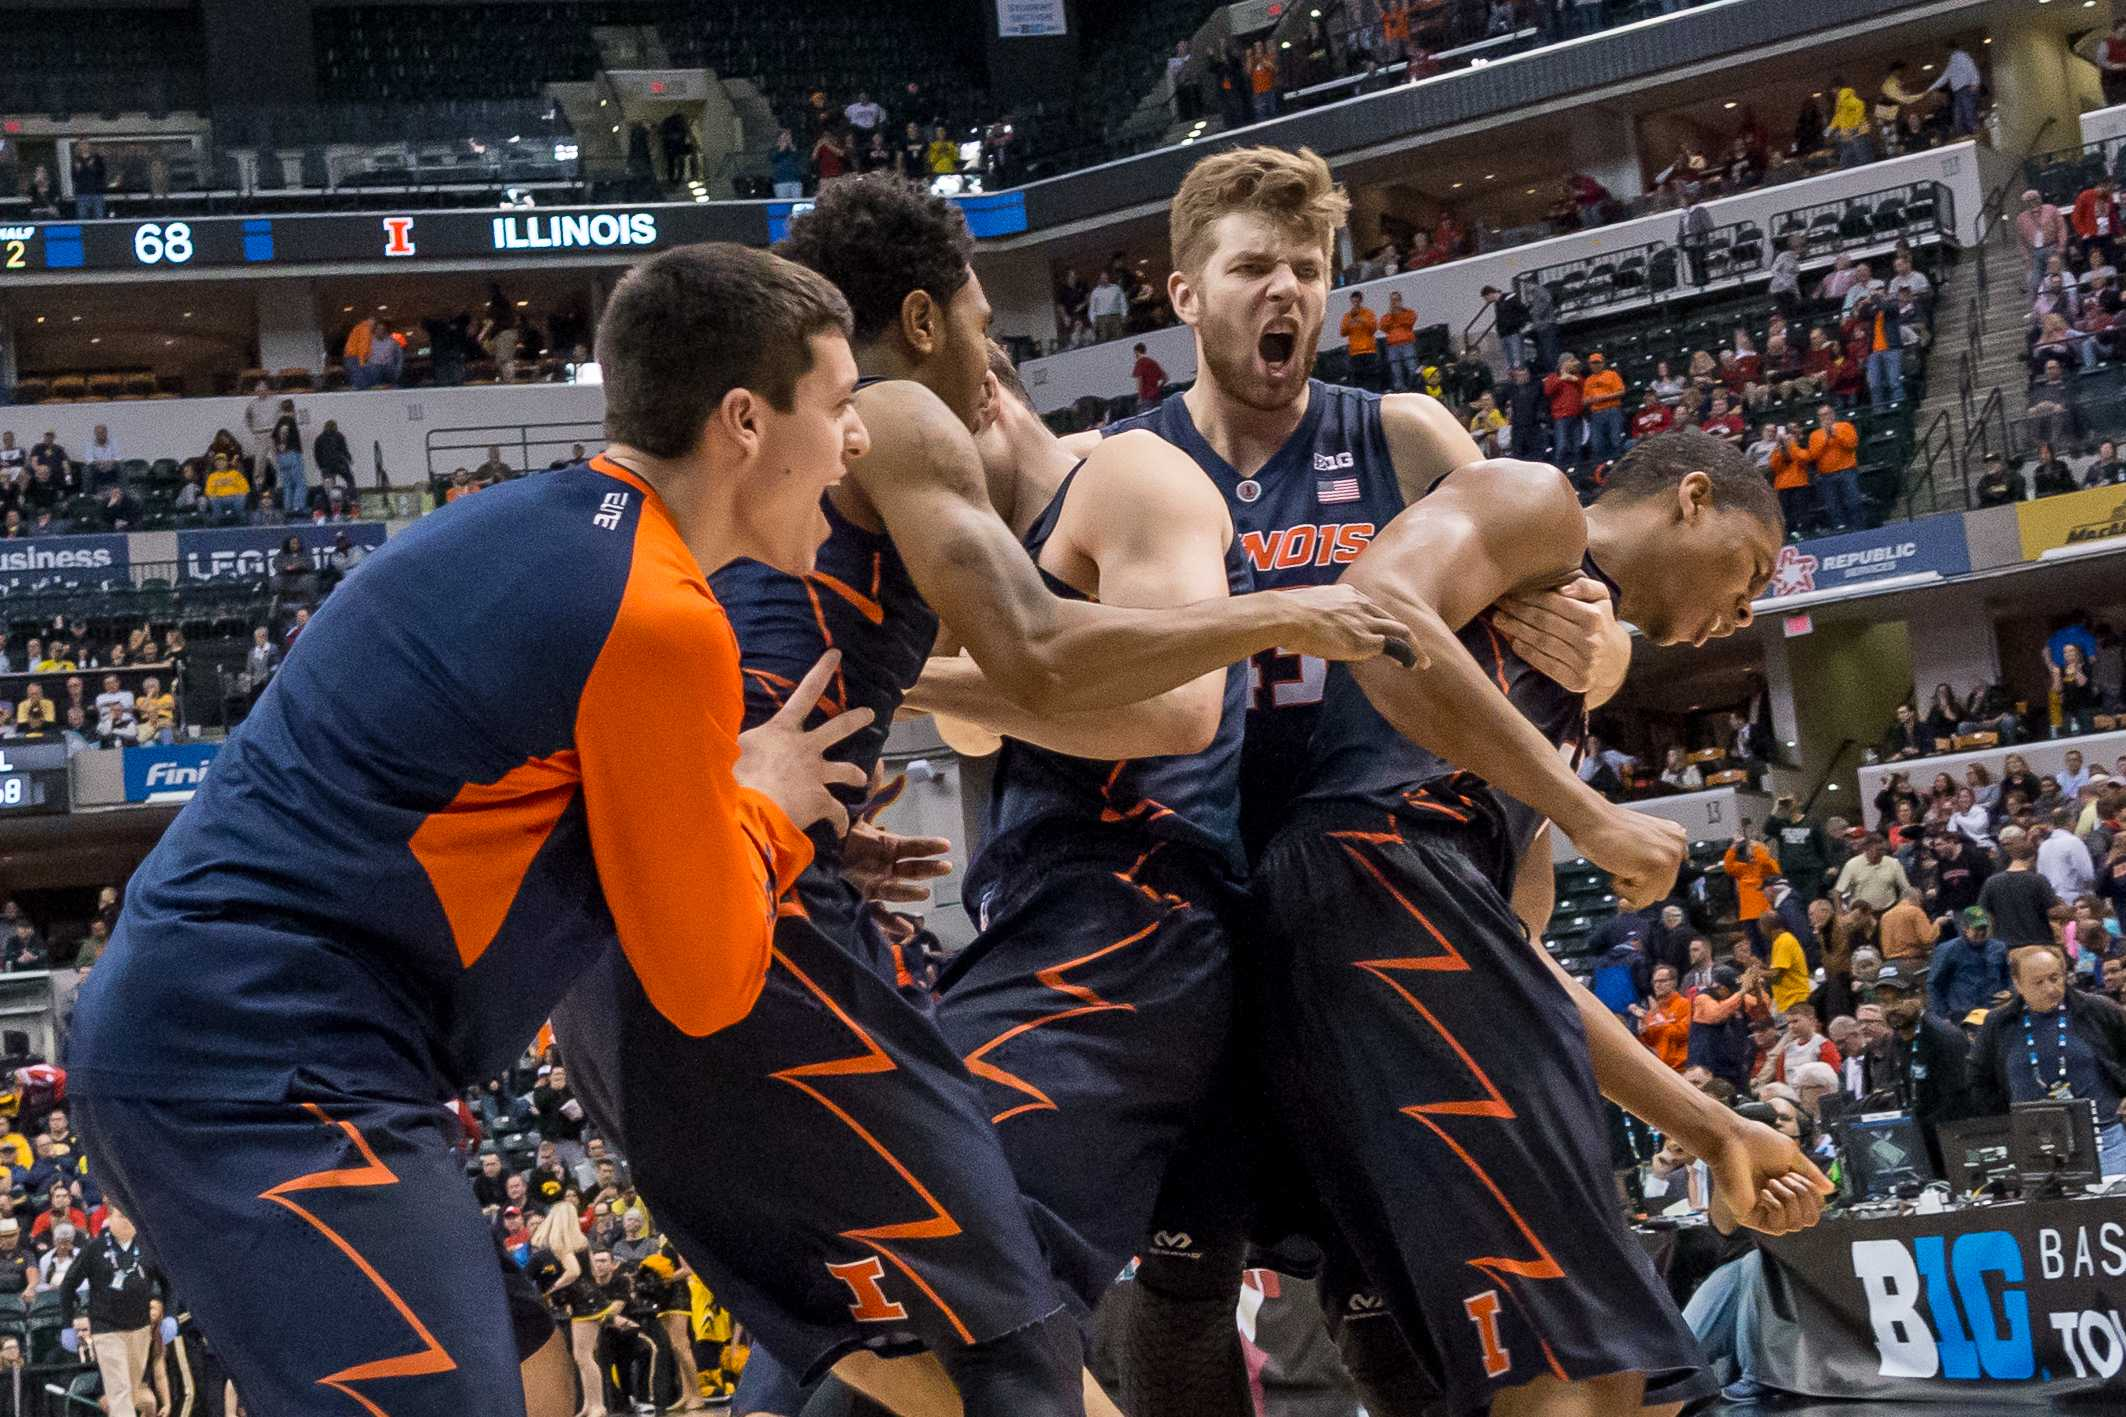 Illinois' Michael Finke hugs Maverick Morgan and Malcolm Hill after defeating Iowa in the second round of the Big Ten Tournament in Indianapolis, Indiana on March 10. The Illini won 68-66.